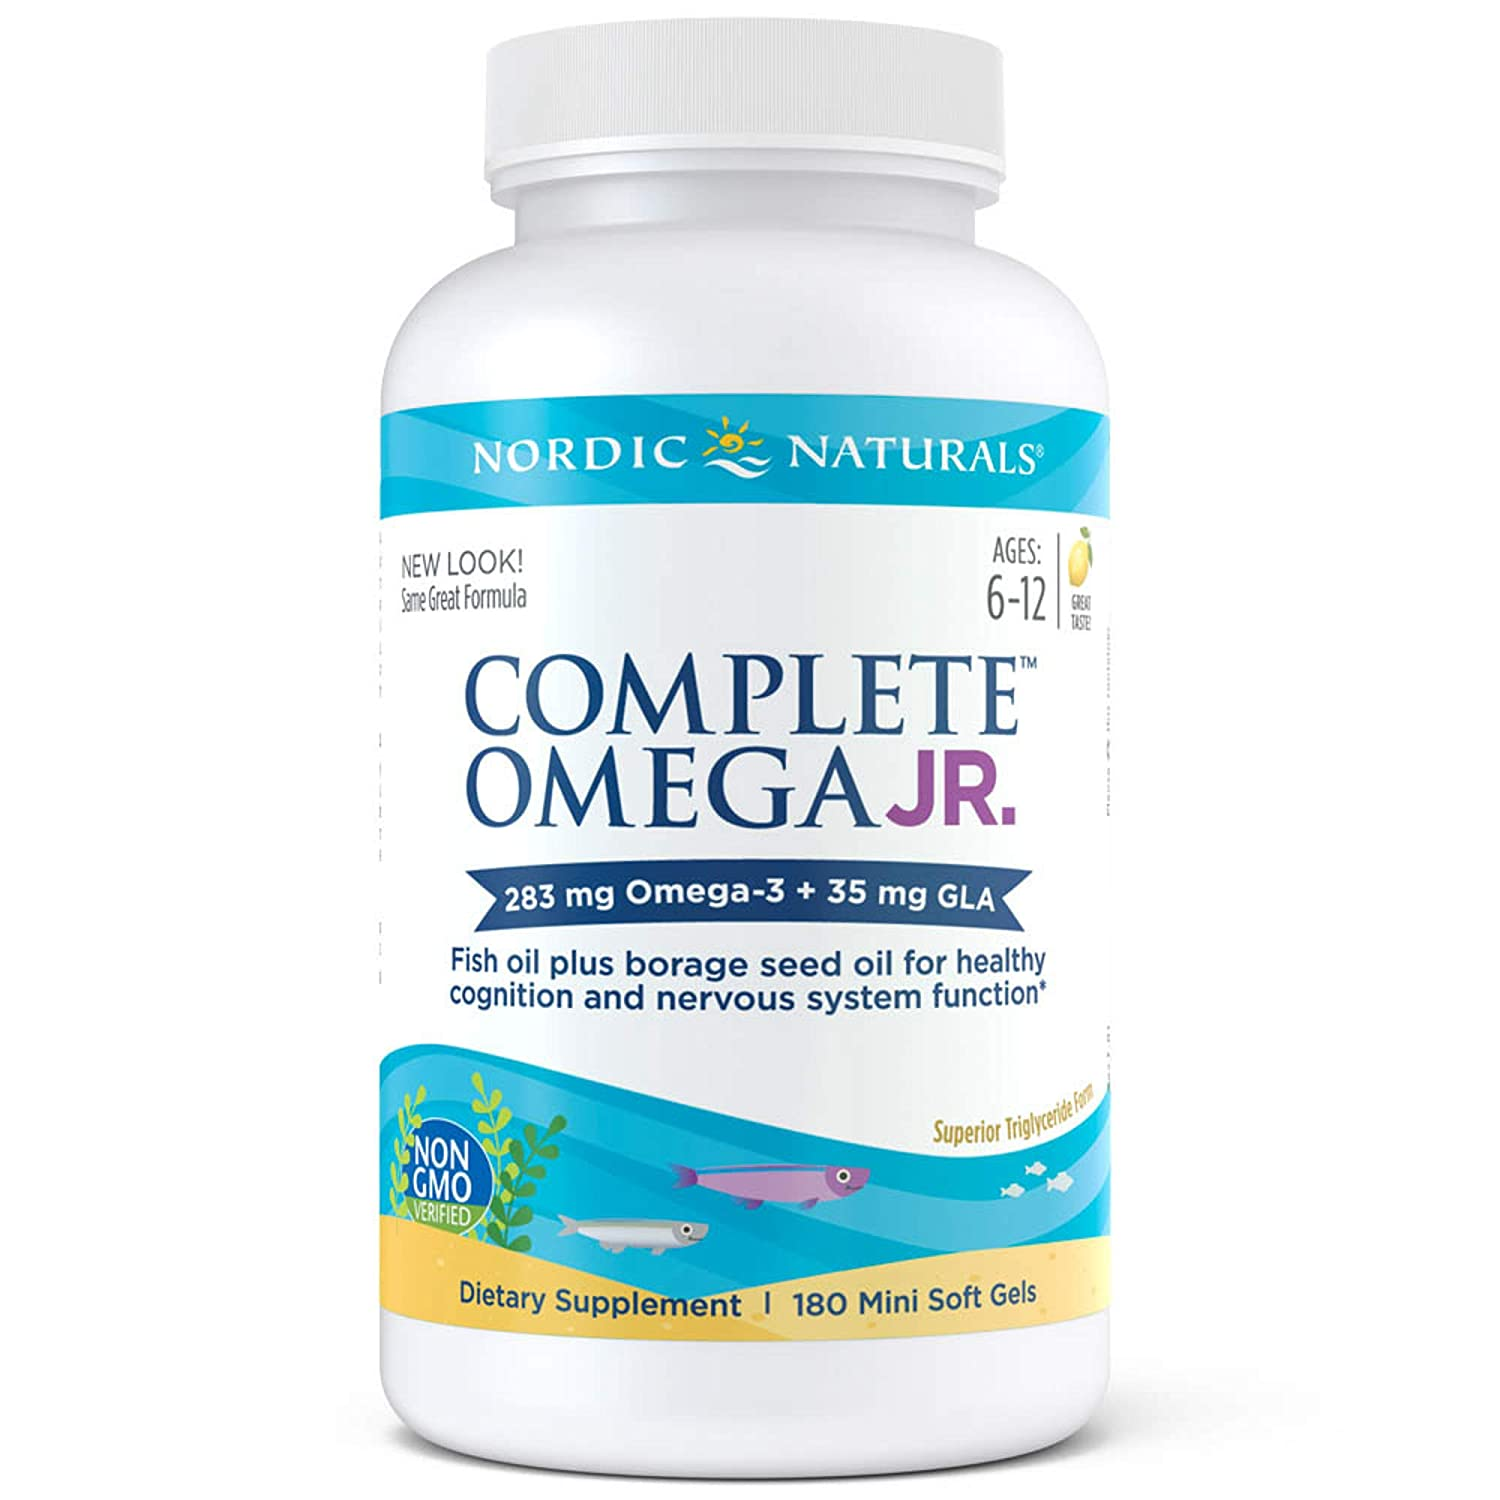 Nordic Naturals - Complete Omega Junior, Promotes Brain, Bone, and Nervous and Immune System Health, 180 Soft Gels (FFP)